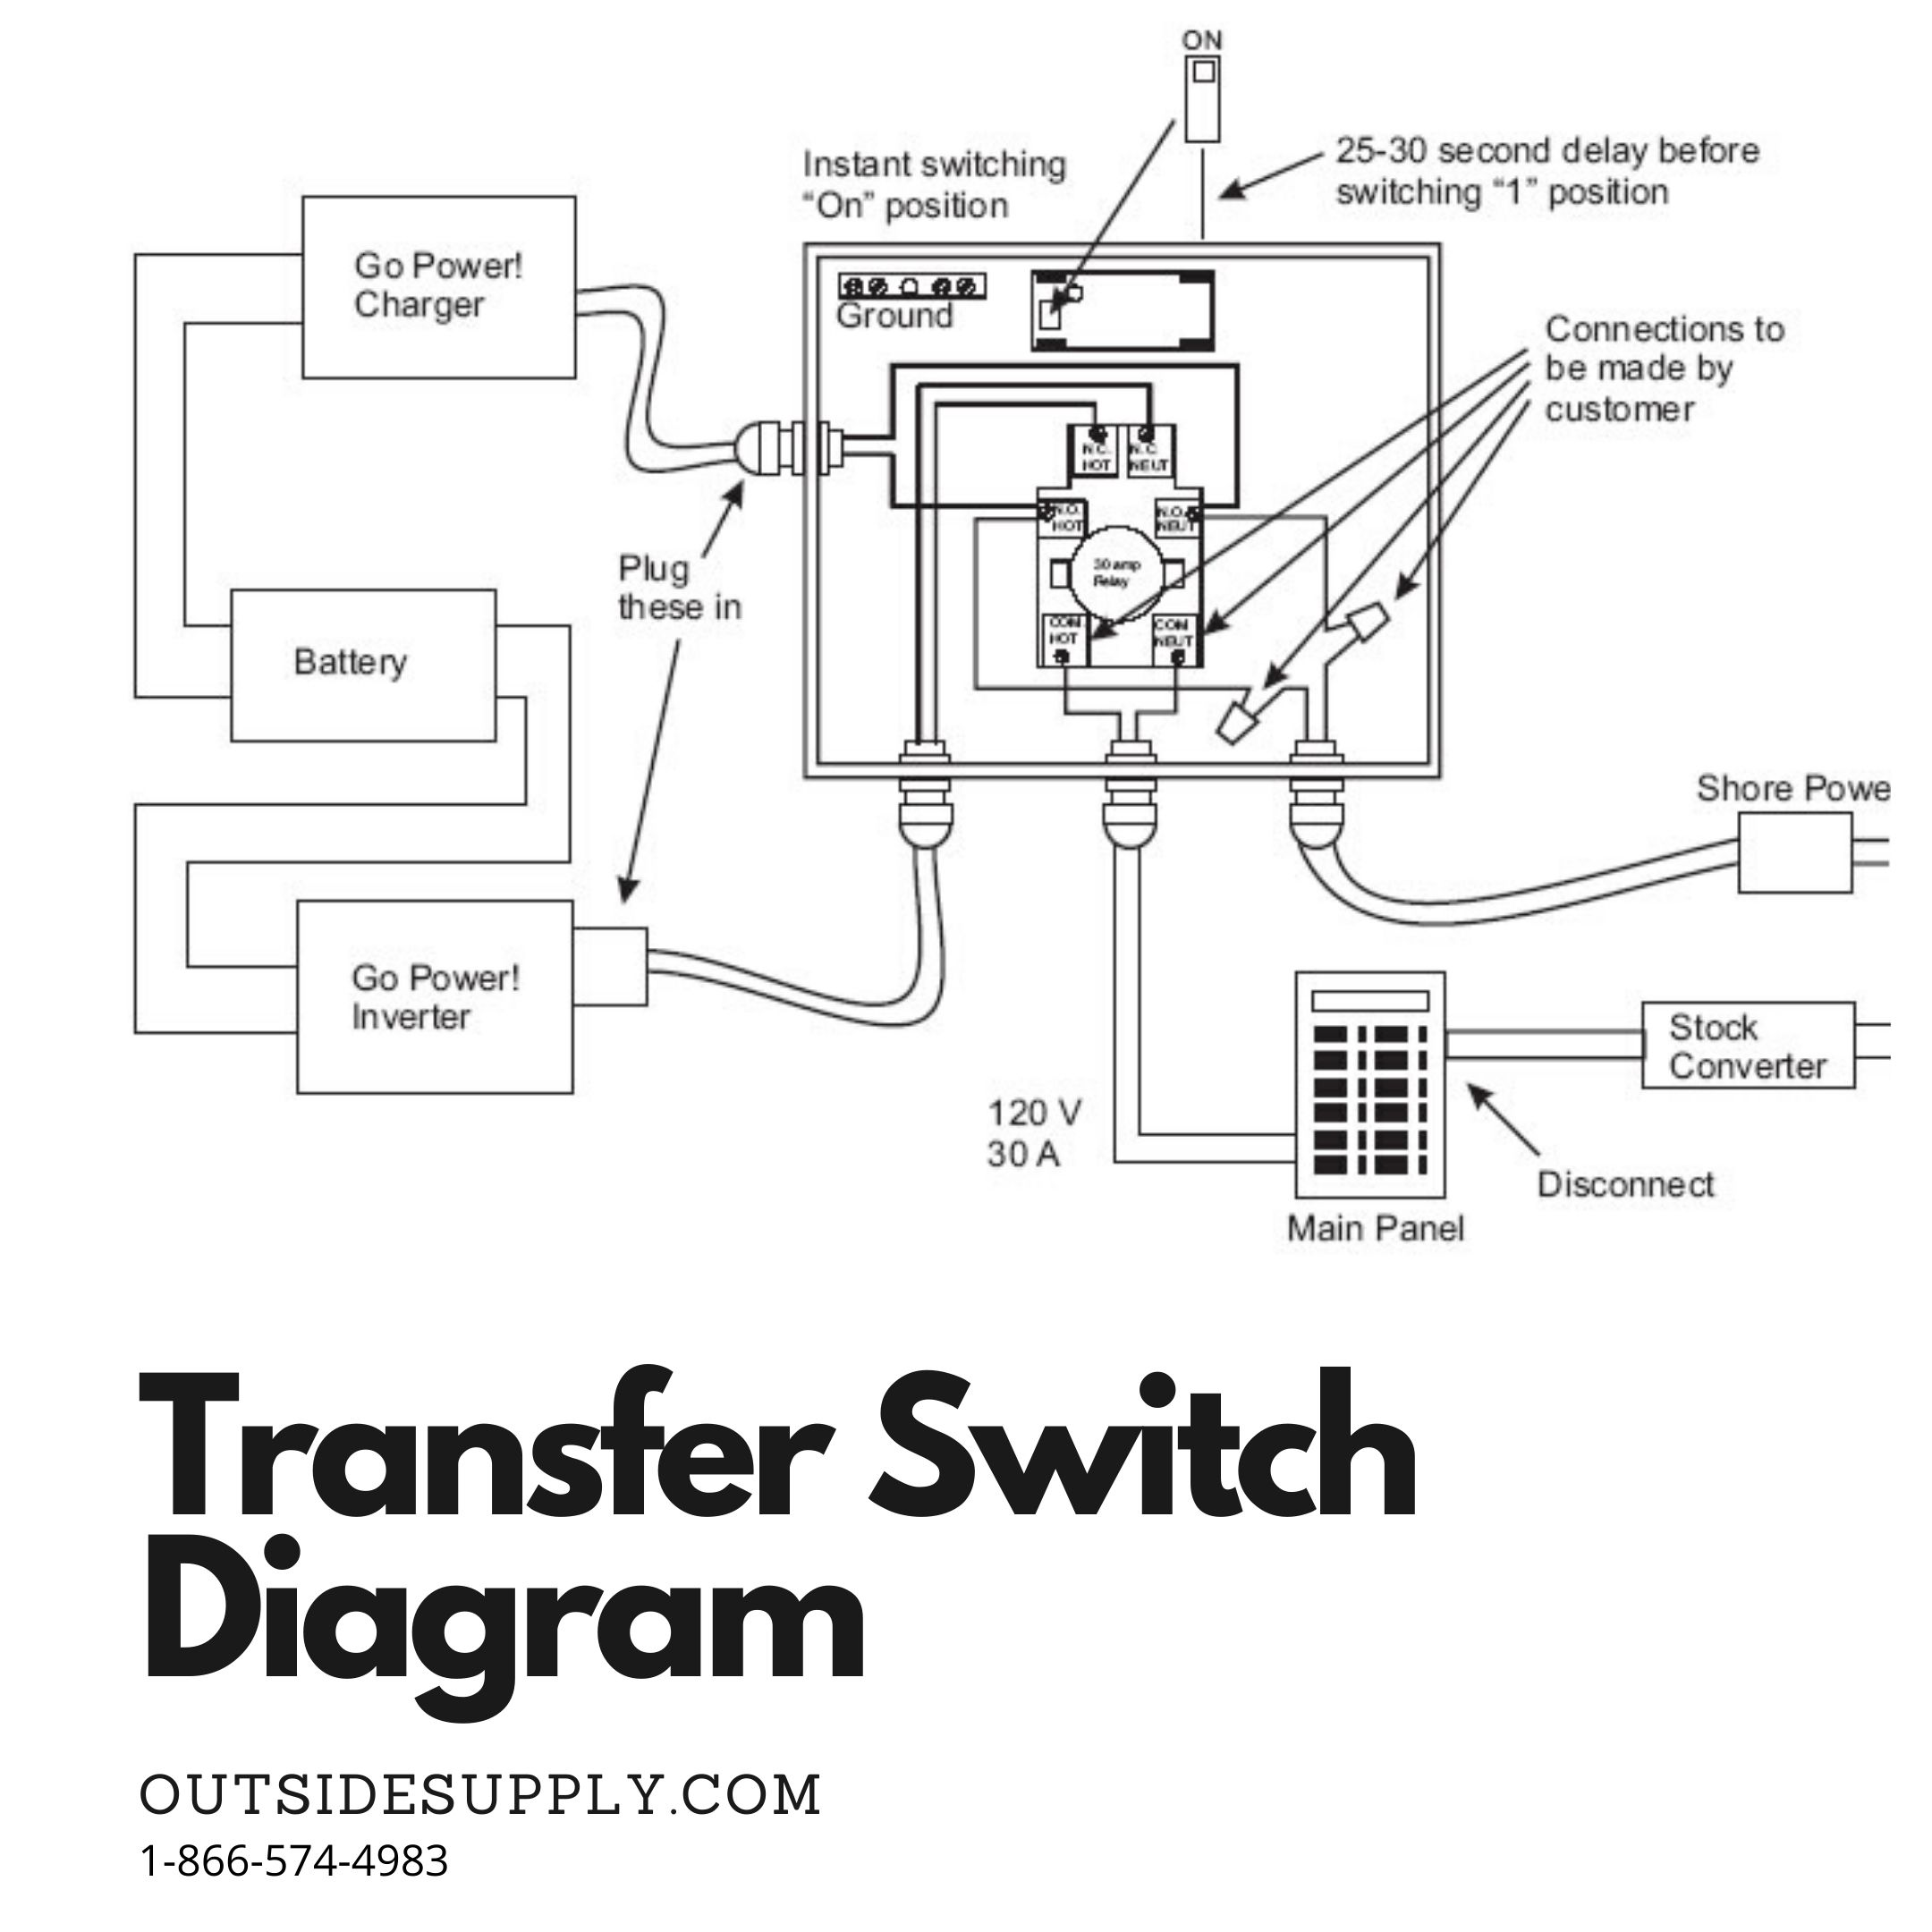 rv power transfer switch wiring diagram example electrical wiring rh cranejapan co rv generator transfer switch installation rv transfer switch wiring